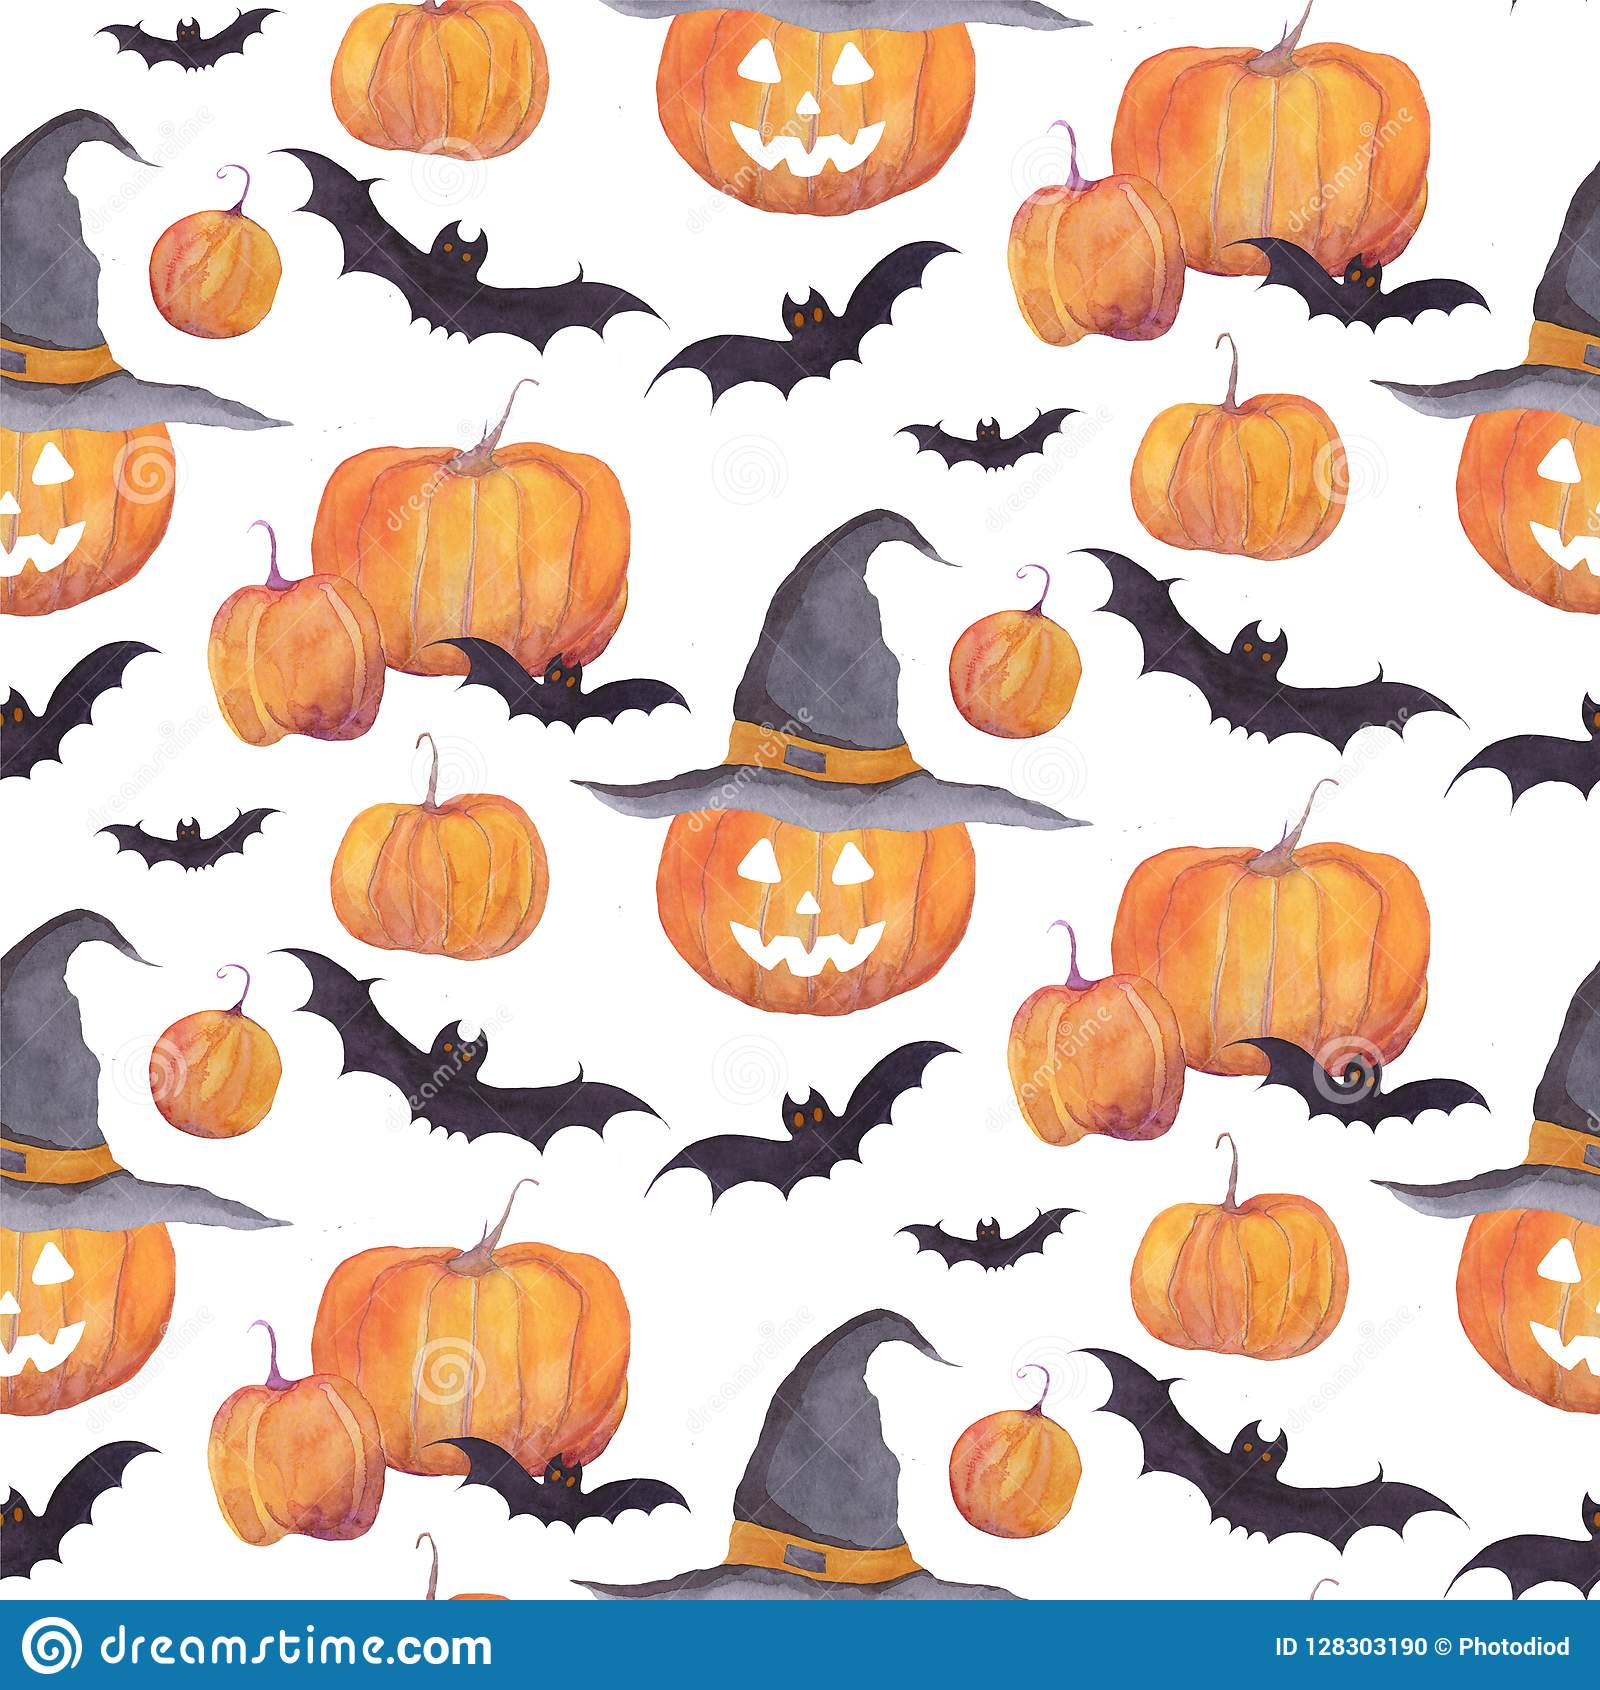 Halloween Watercolor Pattern With Pumpkins, Bats, Funny